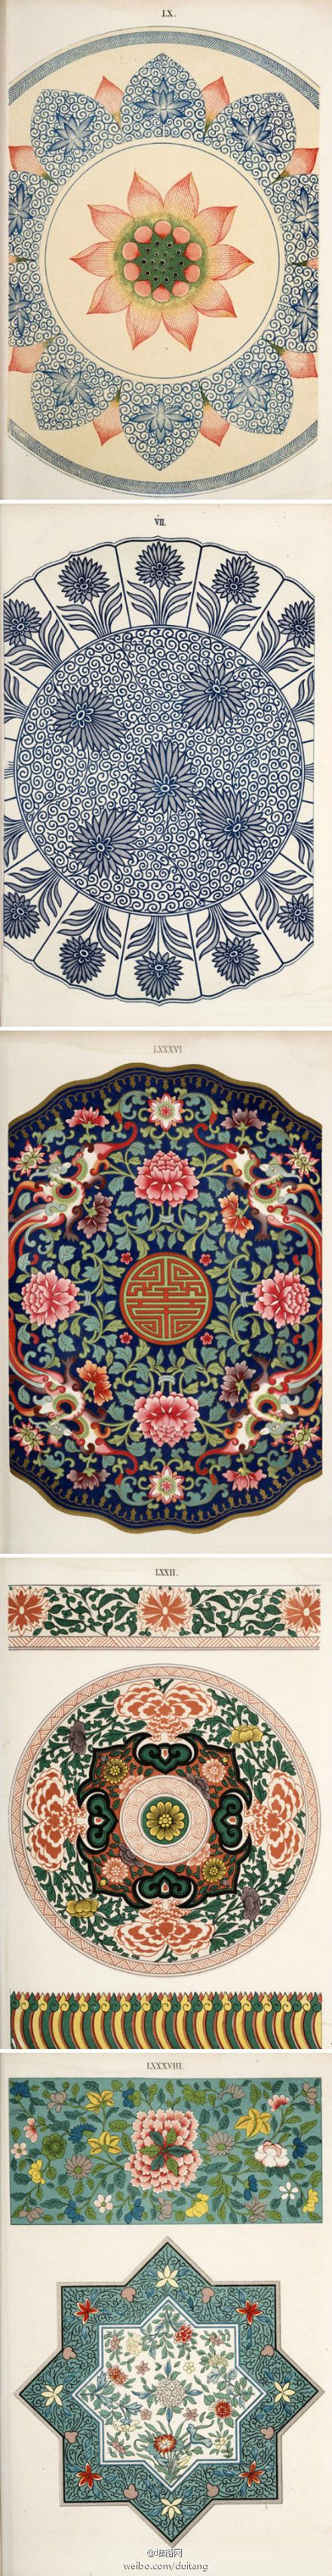 chinese traditional patterns